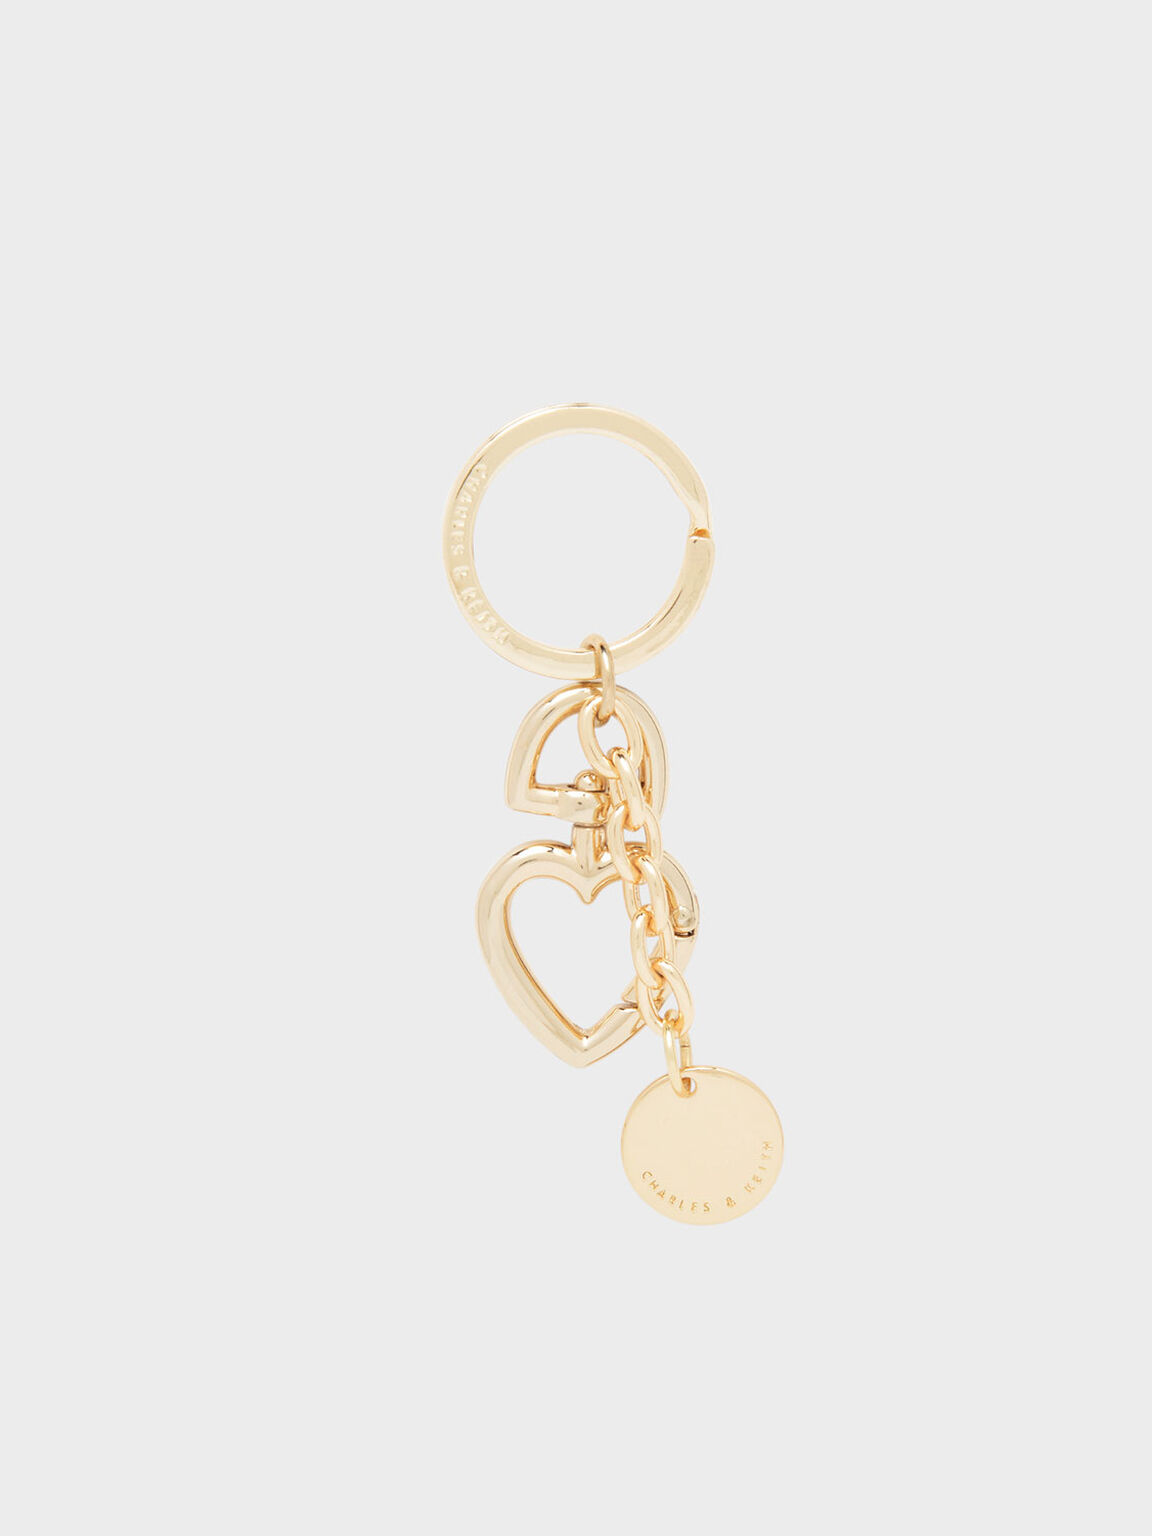 Heart Shaped Clasp Keychain, Gold, hi-res